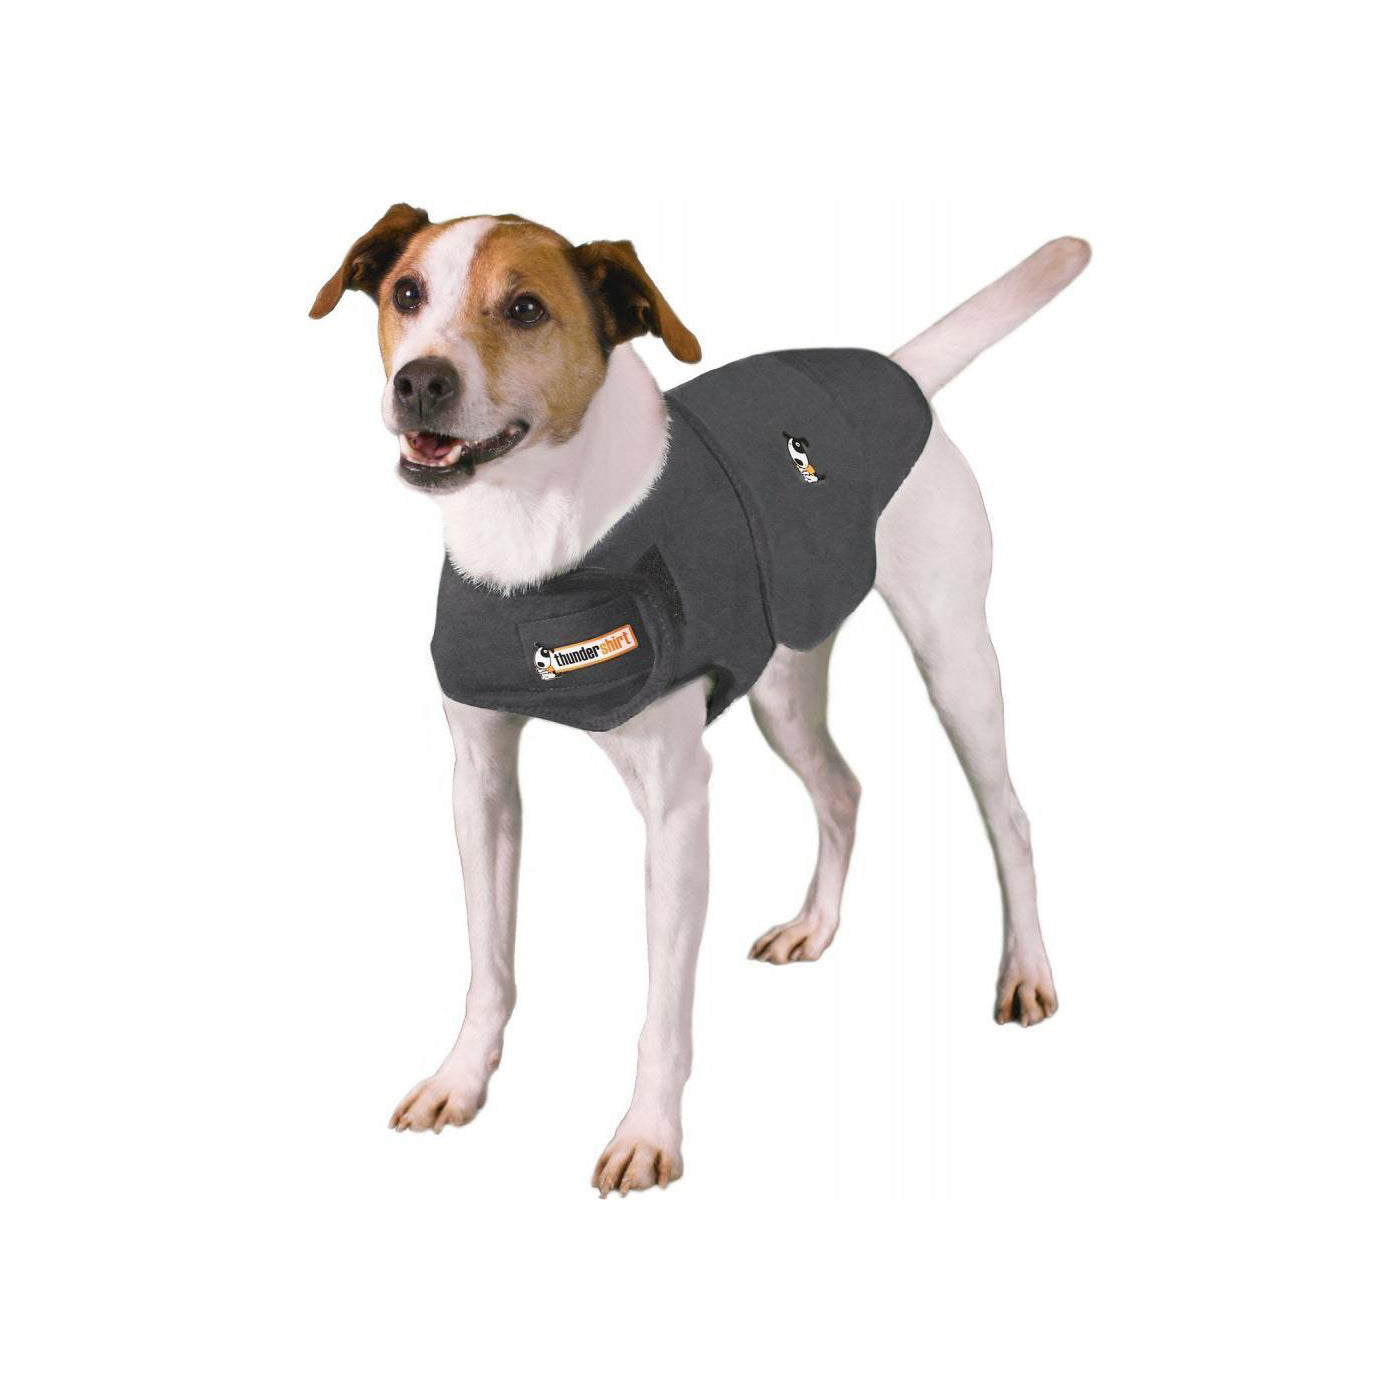 Thundershirt Anxiety Solution for Dogs